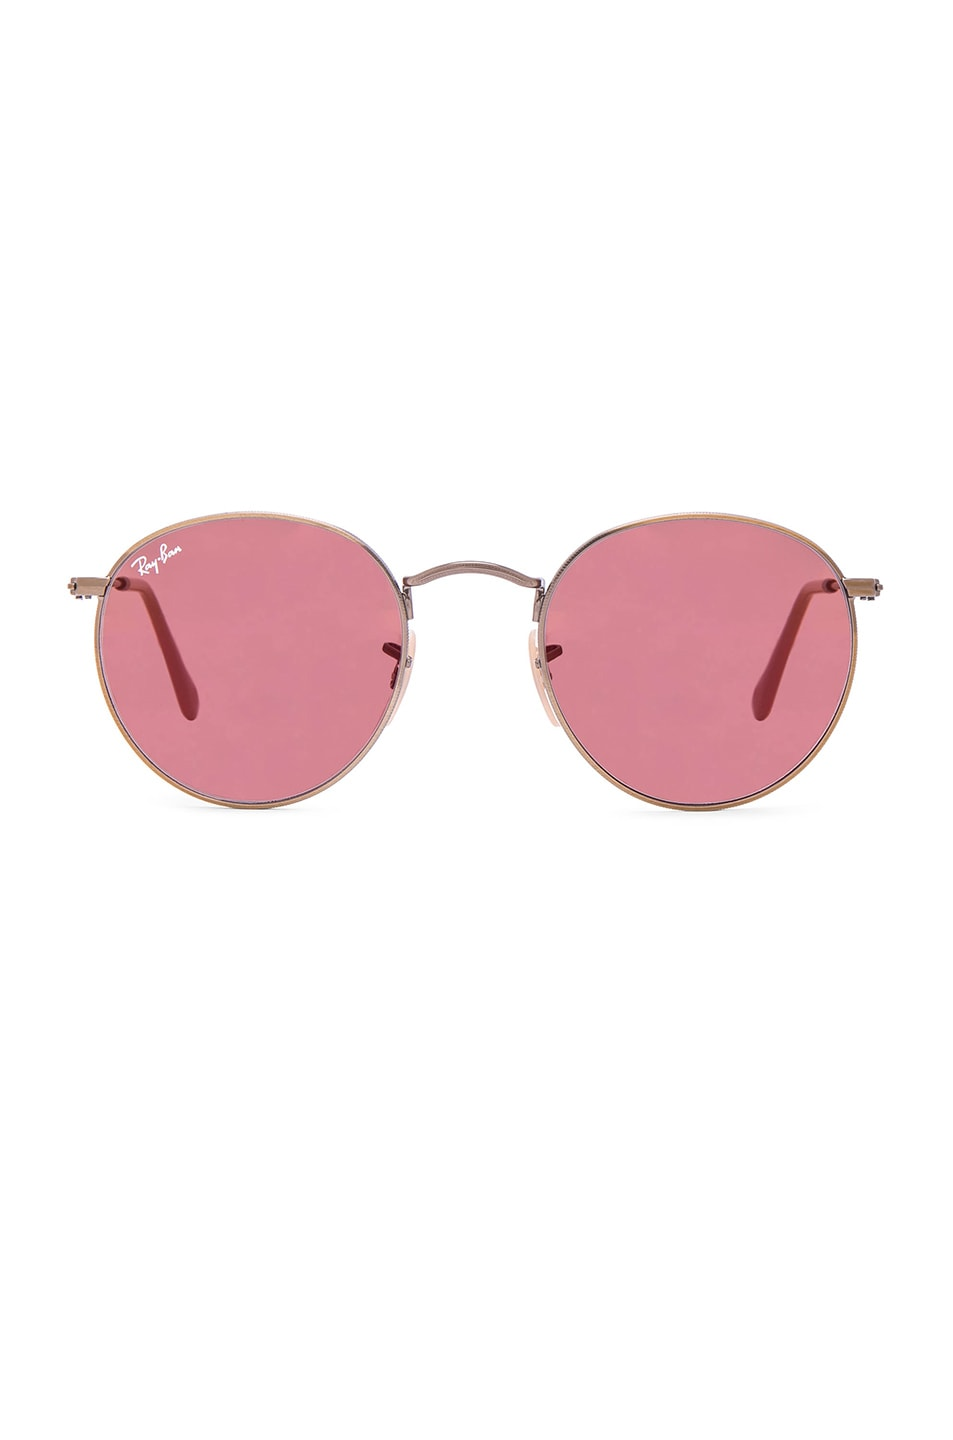 Image 1 of Ray-Ban Round Sunglasses in Red Mirror